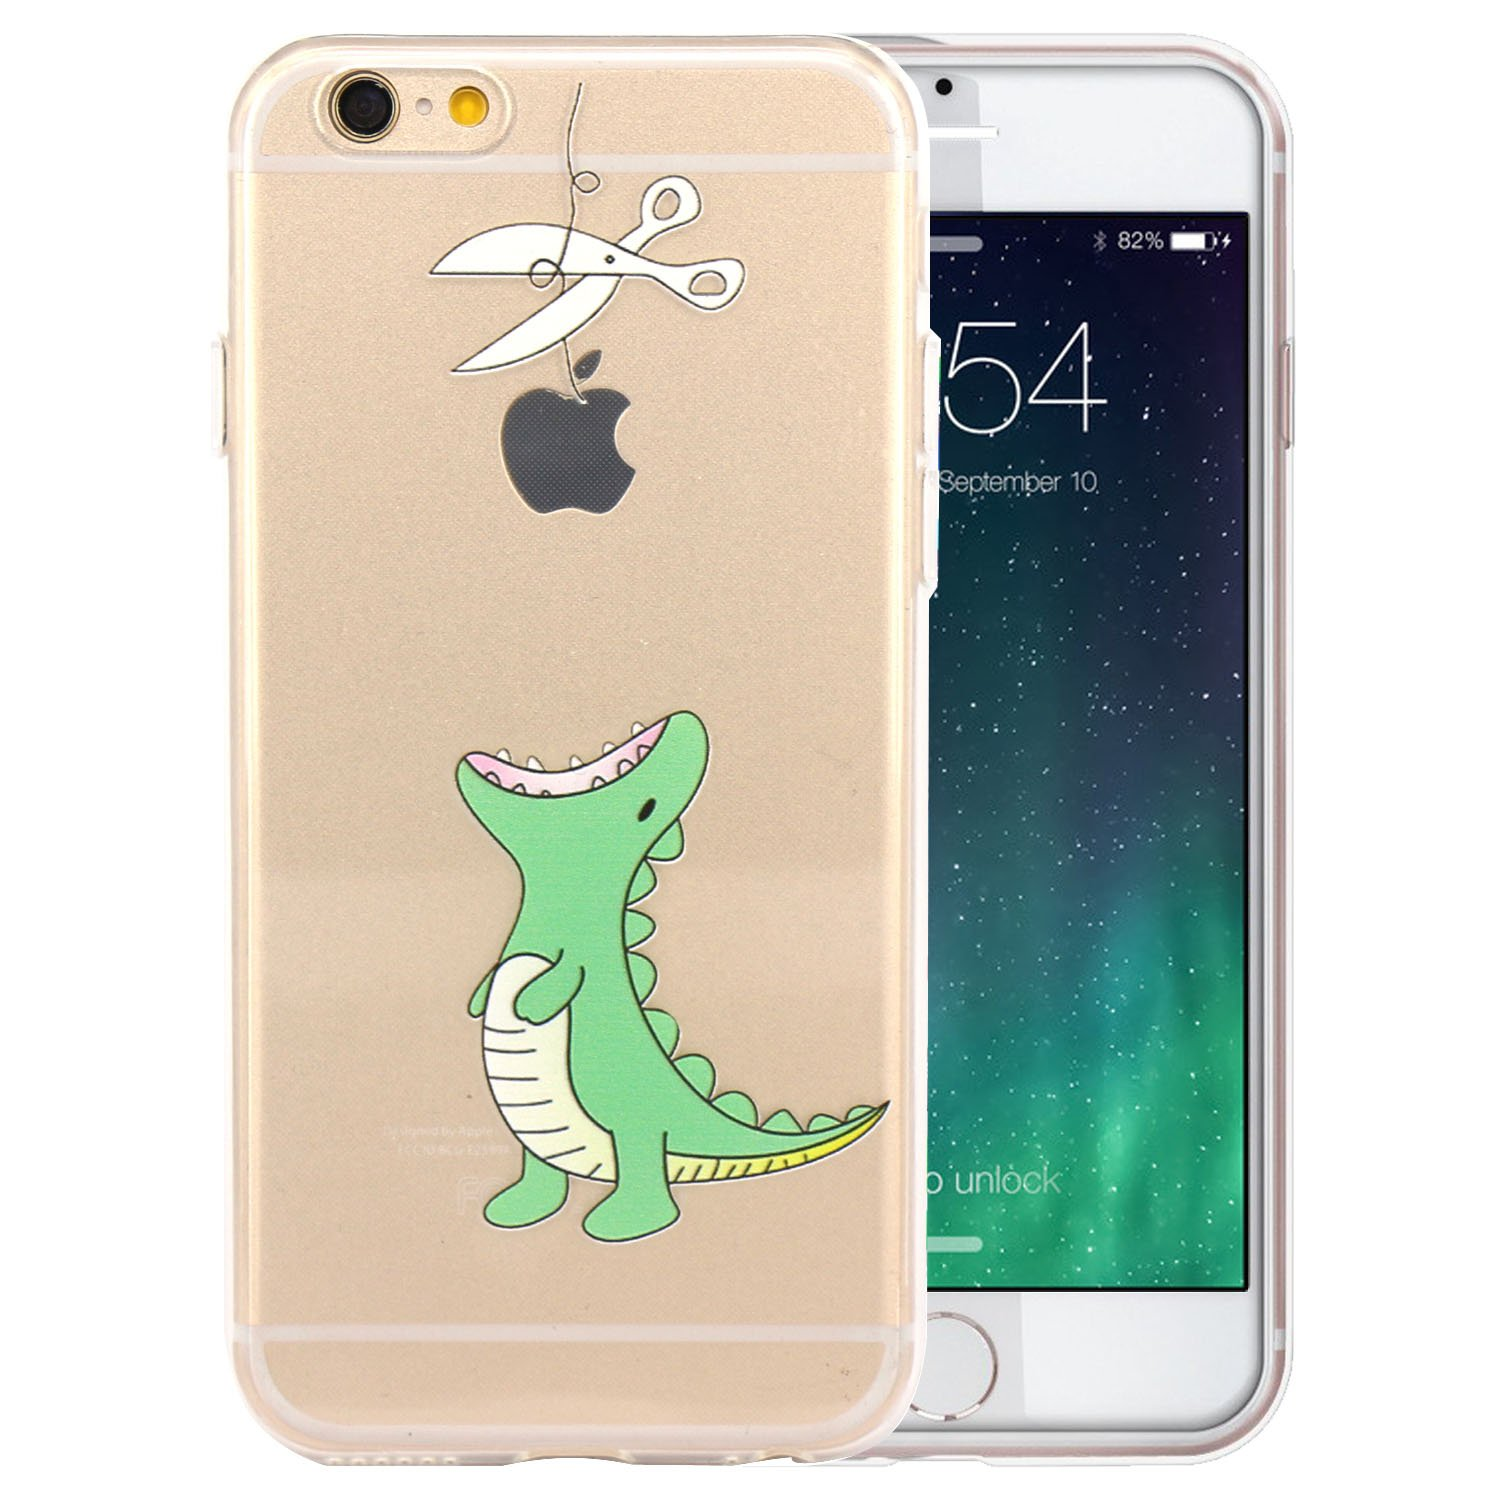 custodia iphone 6 strana